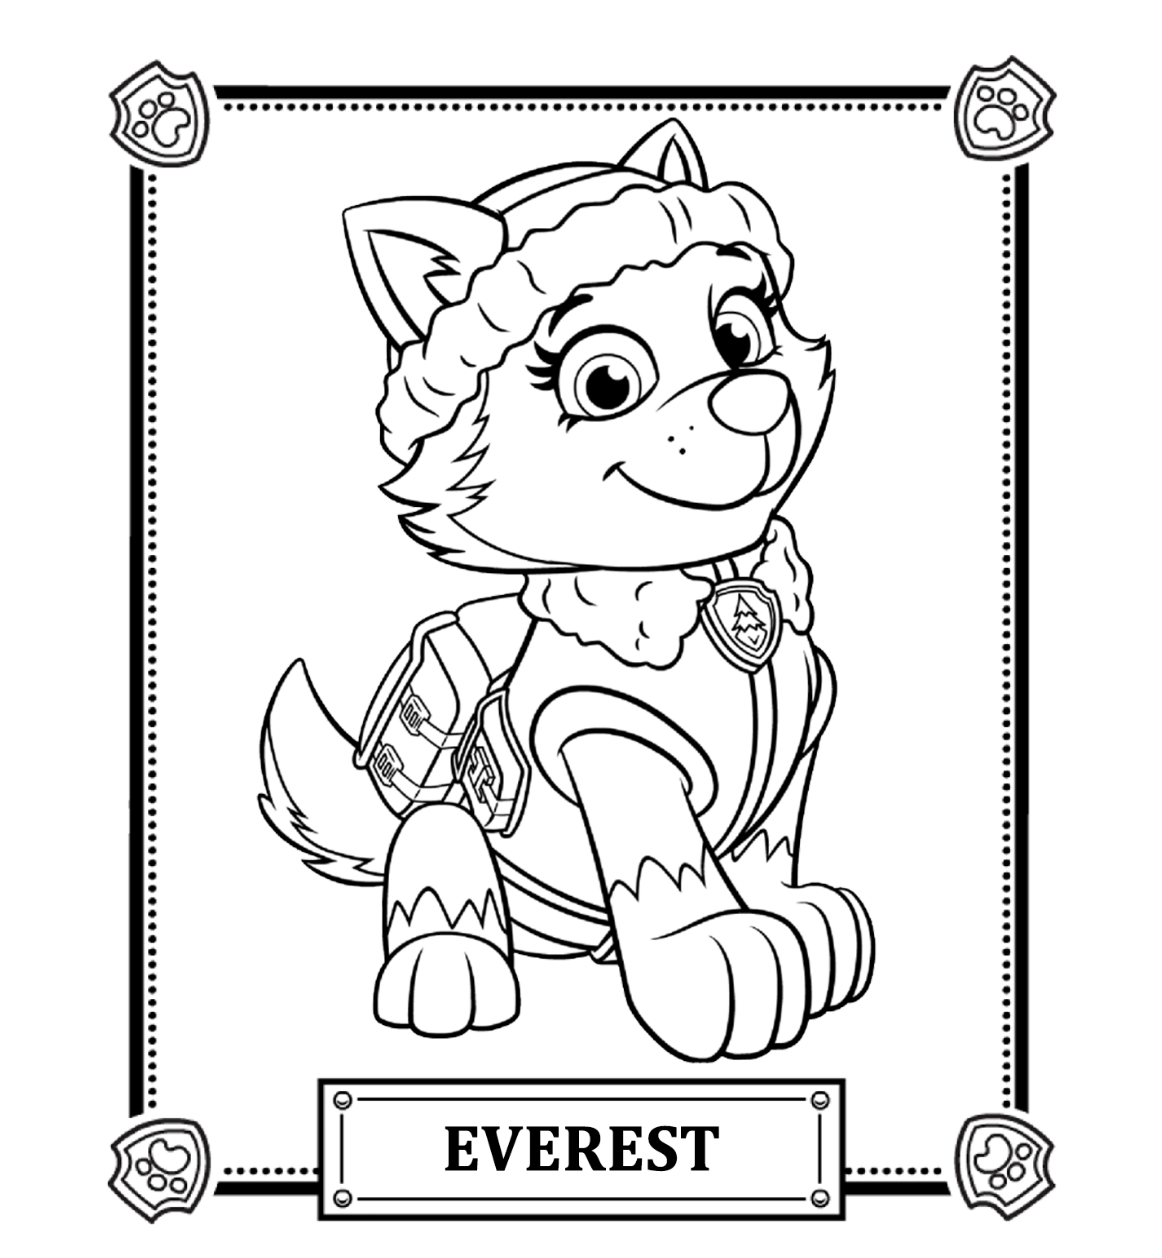 paw patrol coloring pages paw patrol coloring pages free download on clipartmag coloring paw patrol pages